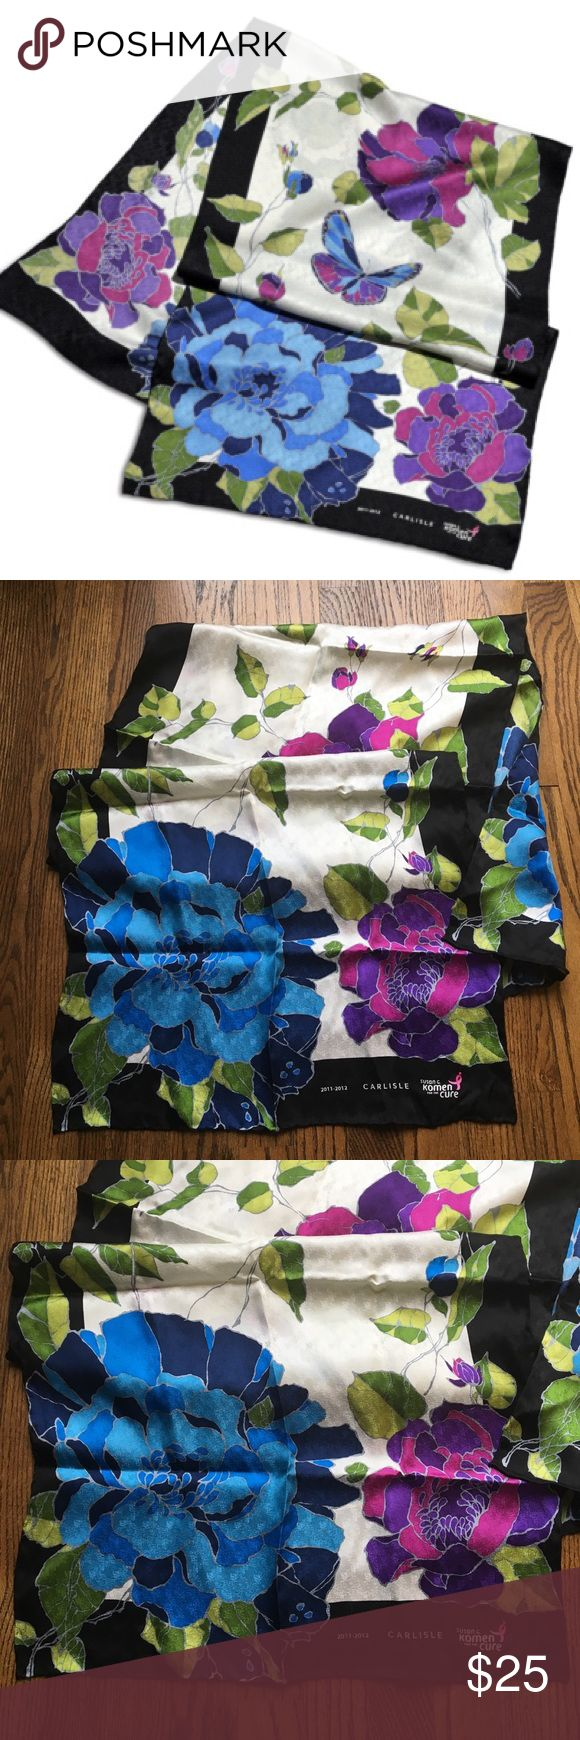 Carlisle Collection Fabric of Hope 100%silk scarf Carlisle Collection Fabric of Hope silk scarf  program created partnership with Susan G. Komen for the Cure® . This is the 2011-2012 design featuring a floral and butterfly design in royal blue, fuchsia, green and purple. Accessories Scarves & Wraps